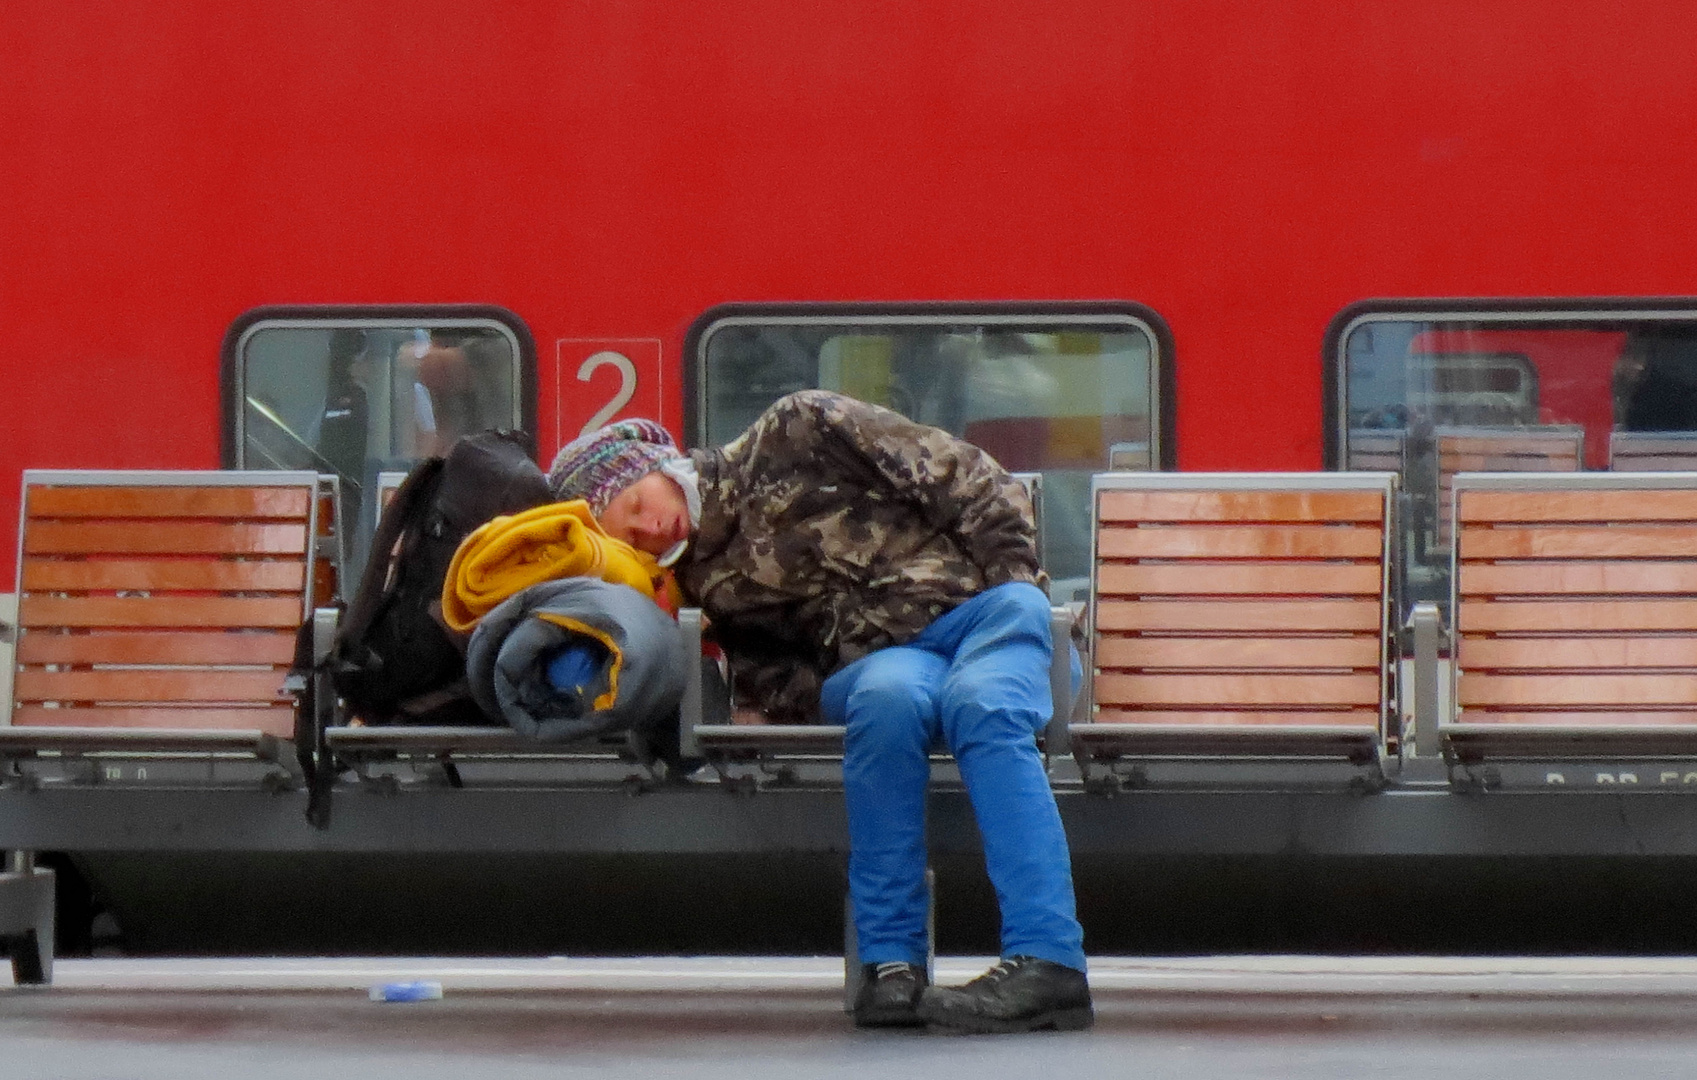 Waiting for a train....